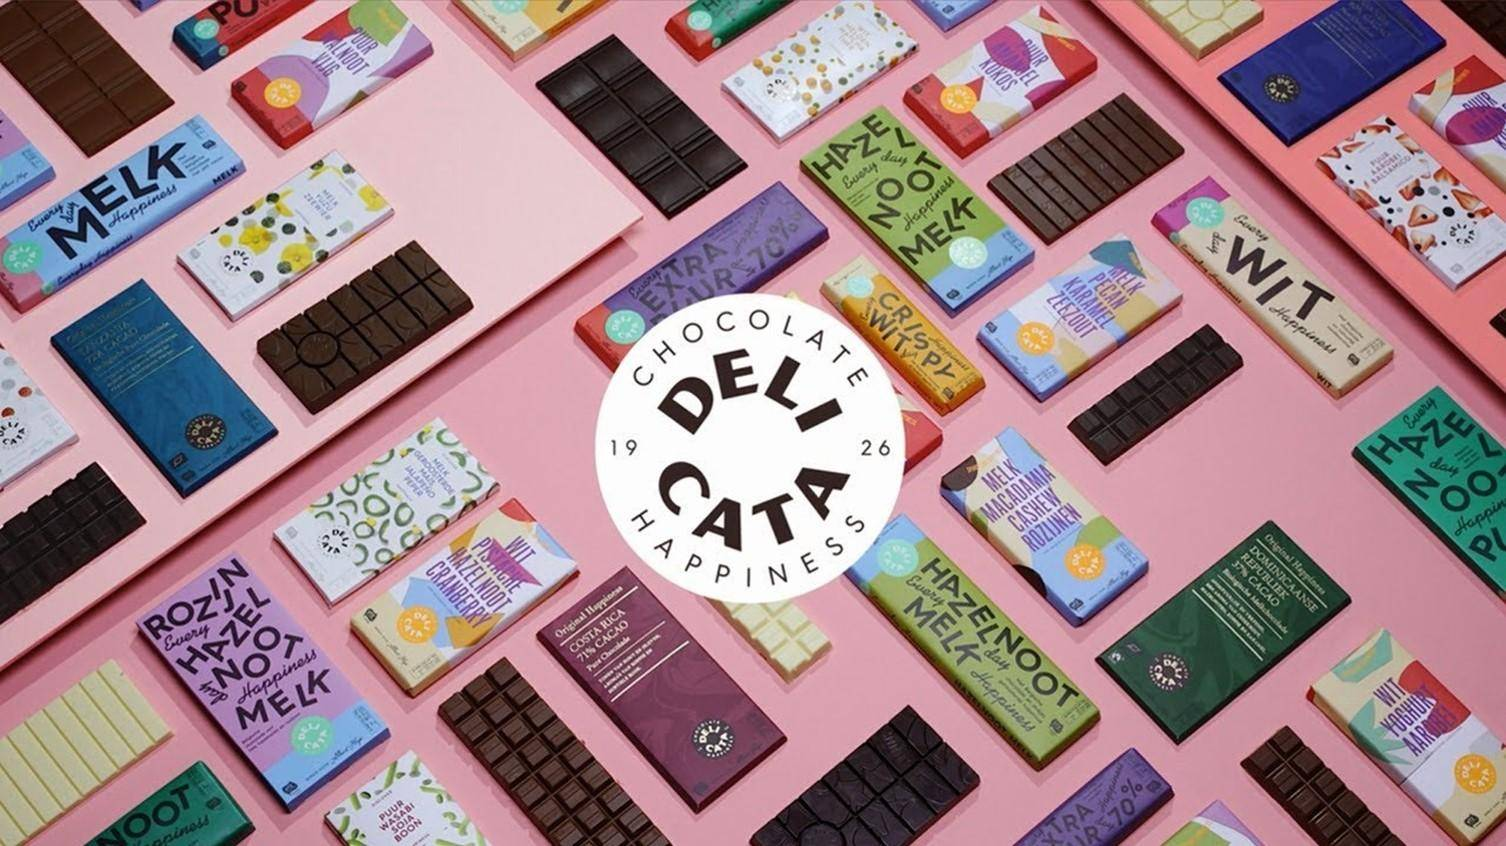 Strategic partnership between Tony's Chocolonely, Albert Heijn and Barry Callebaut sets new industry standard for sourcing cocoa